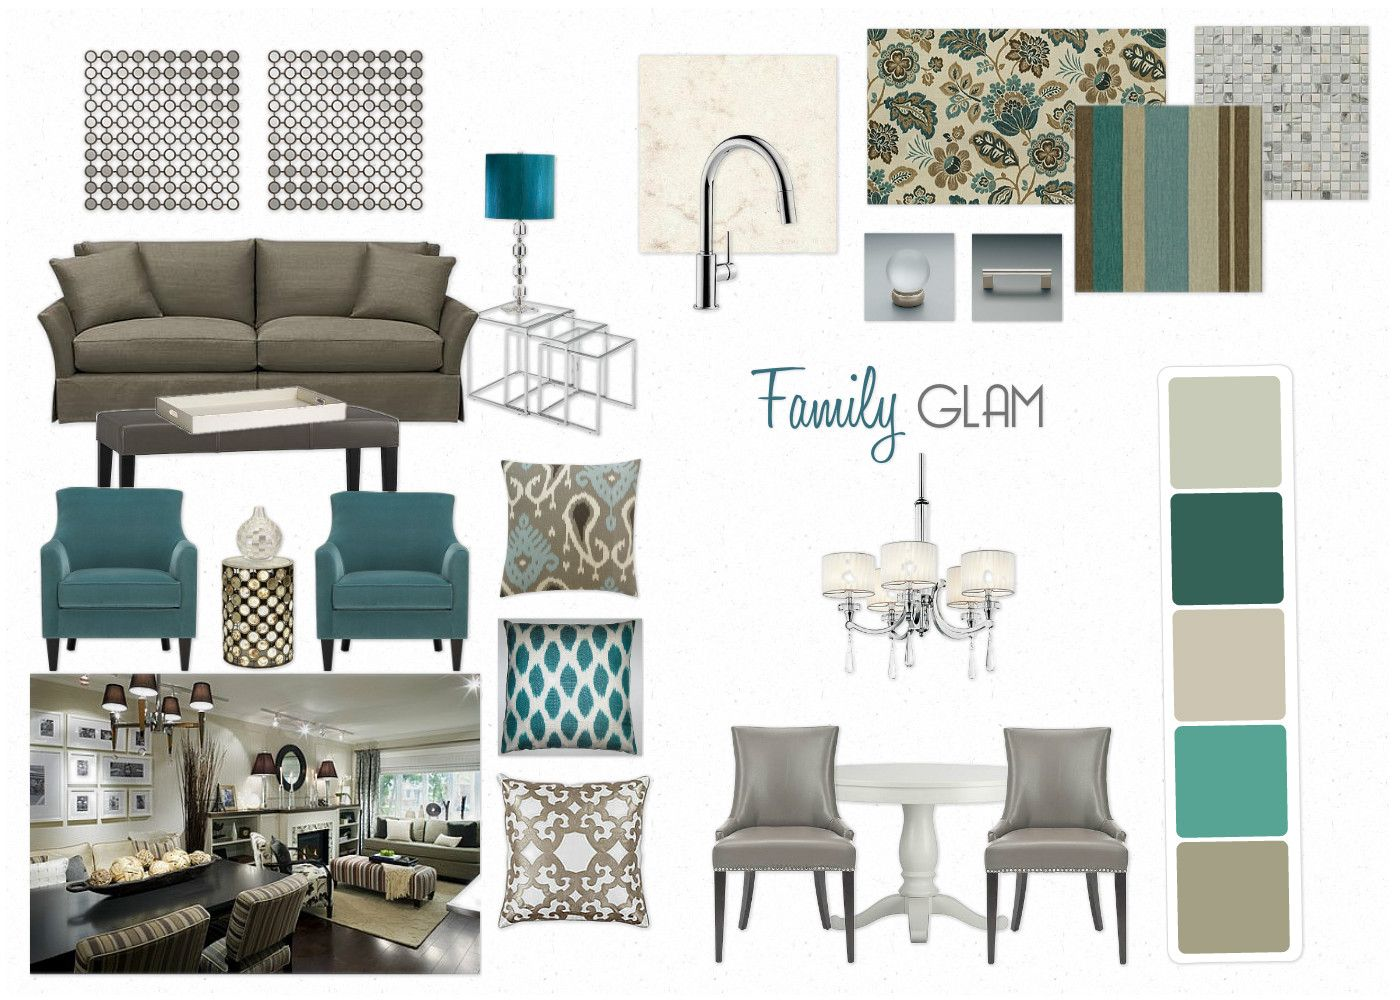 Rustic Glam Master Bedroom Family Glam The ReStyle